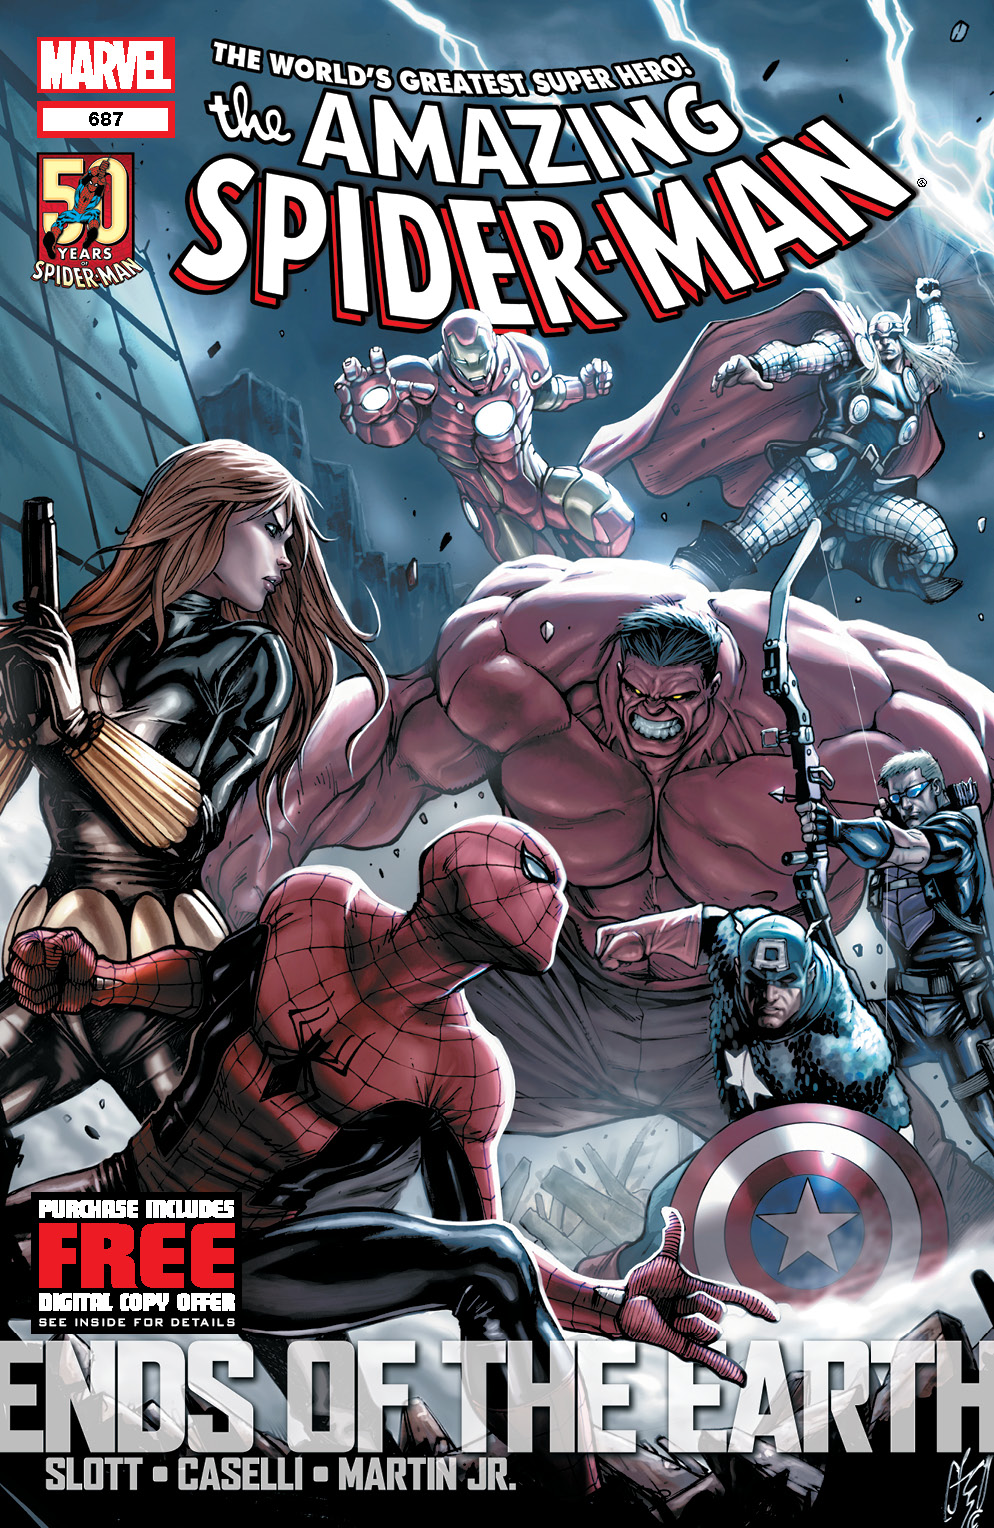 AmazingSpiderMan_687_Cover Marvel to include digital download codes in all $3.99 comics